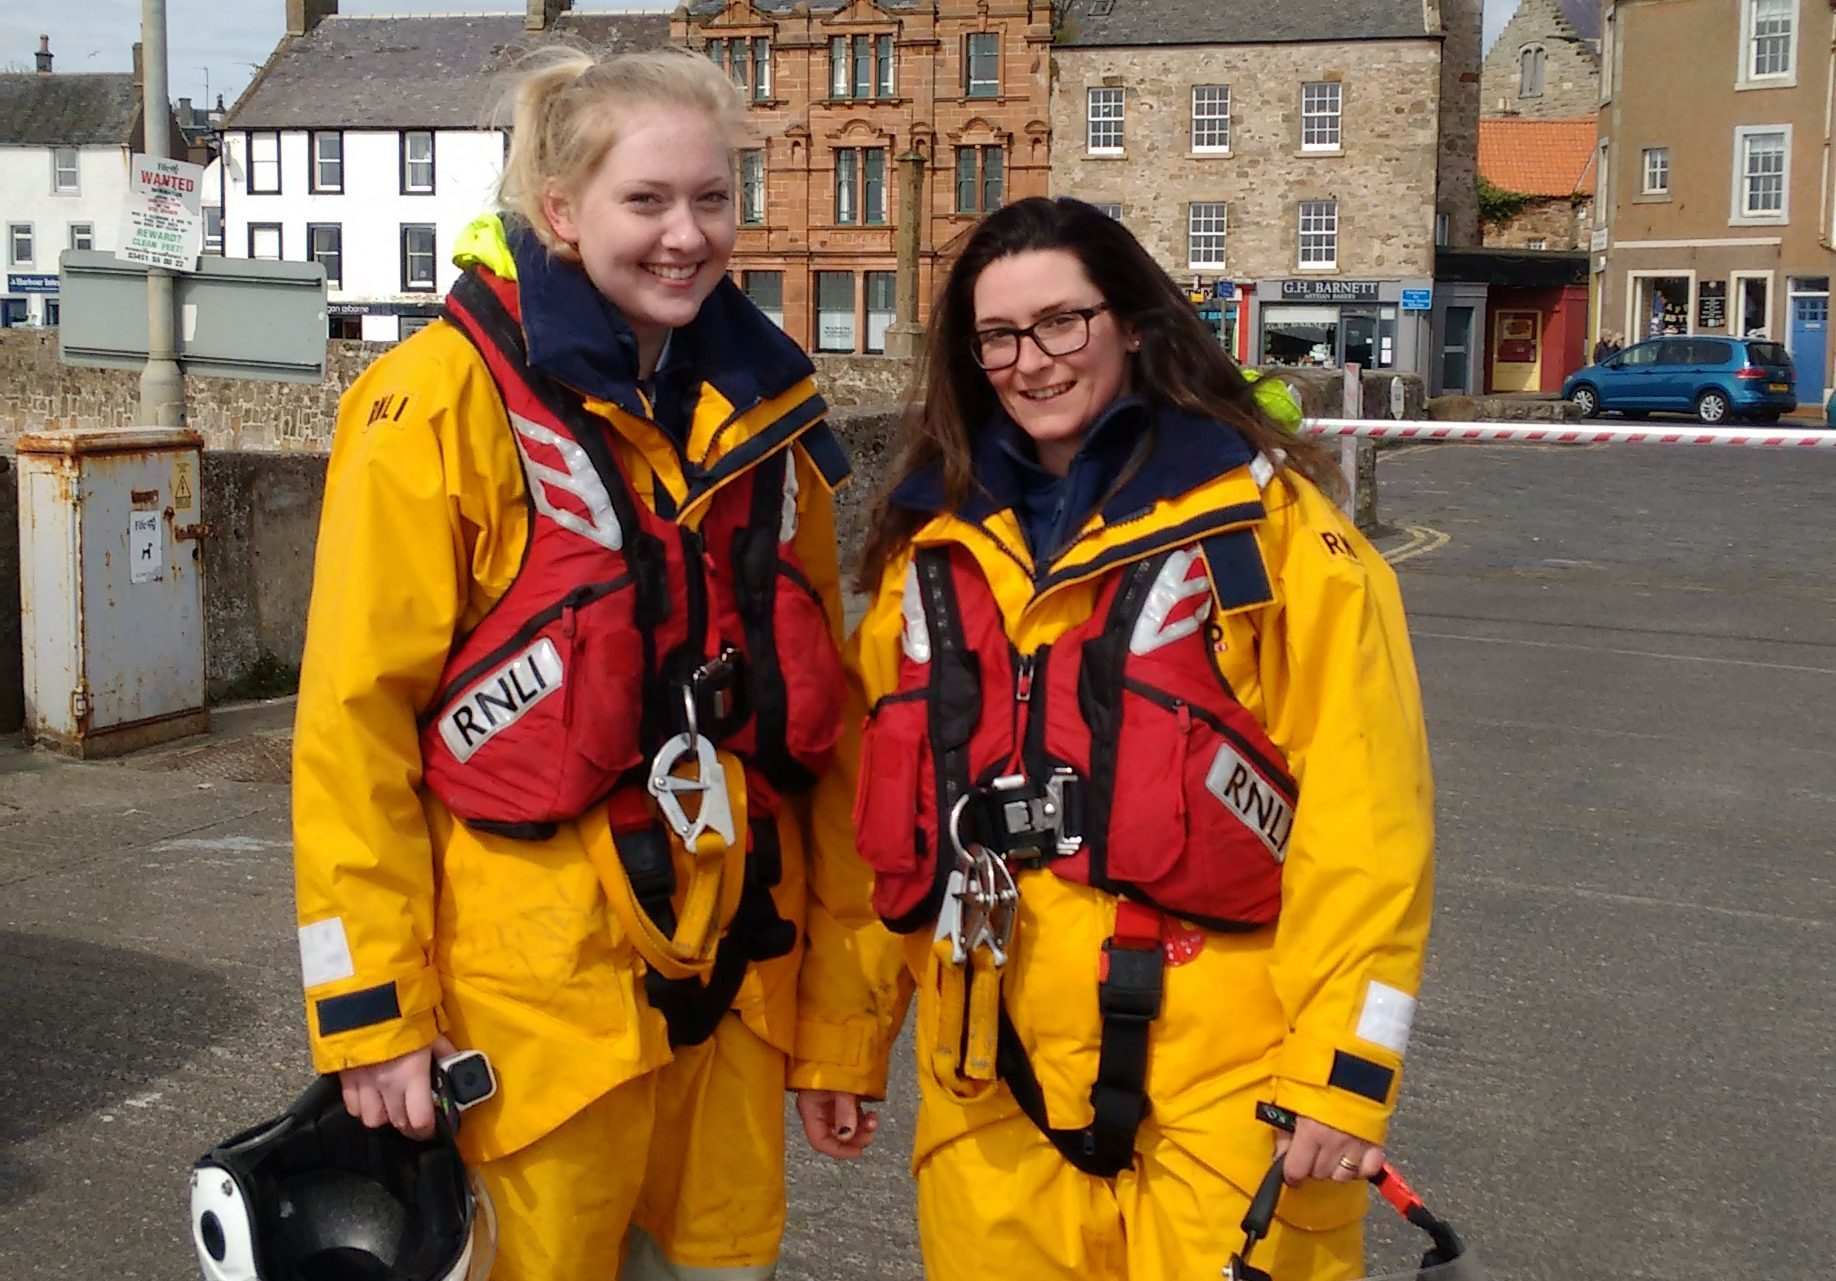 Danielle (left) and Louise (right) after their first shout on Anstruther Lifeboat